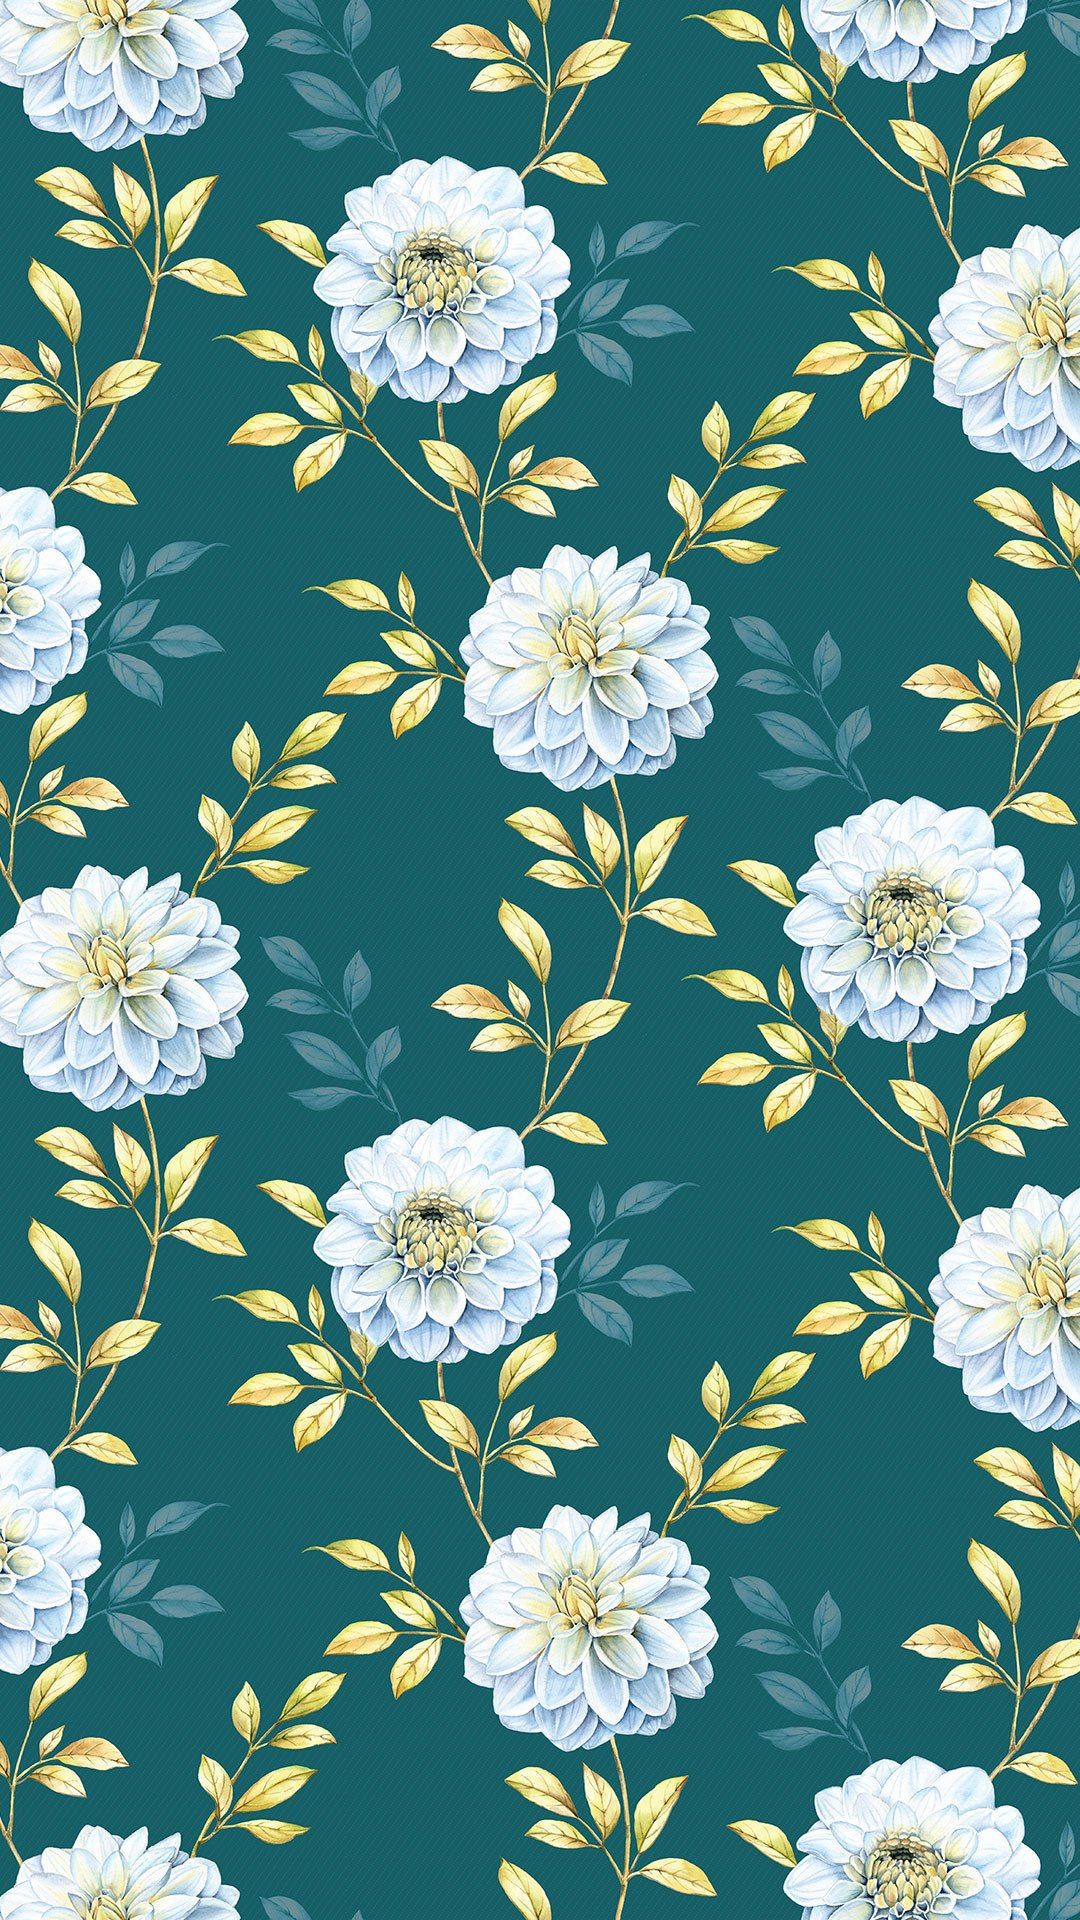 Pin By Victoria Acevedo On Rose Wallpapers In 2020 Flower